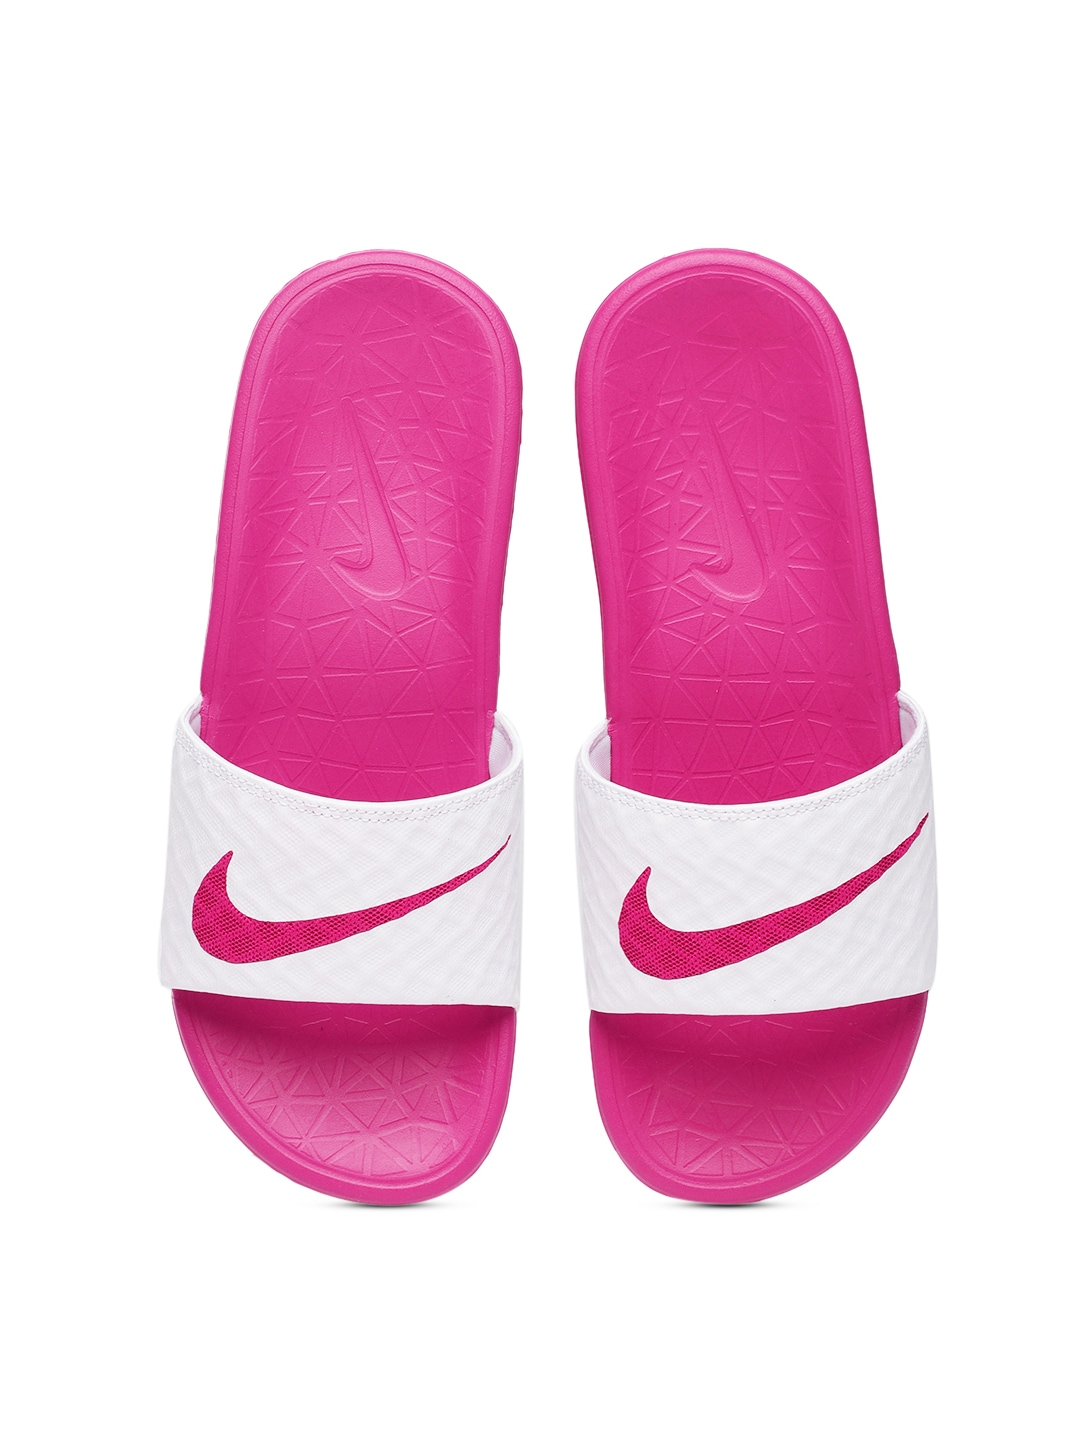 519e55757 Nike Flip-Flops - Buy Nike Flip-Flops for Men Women Online